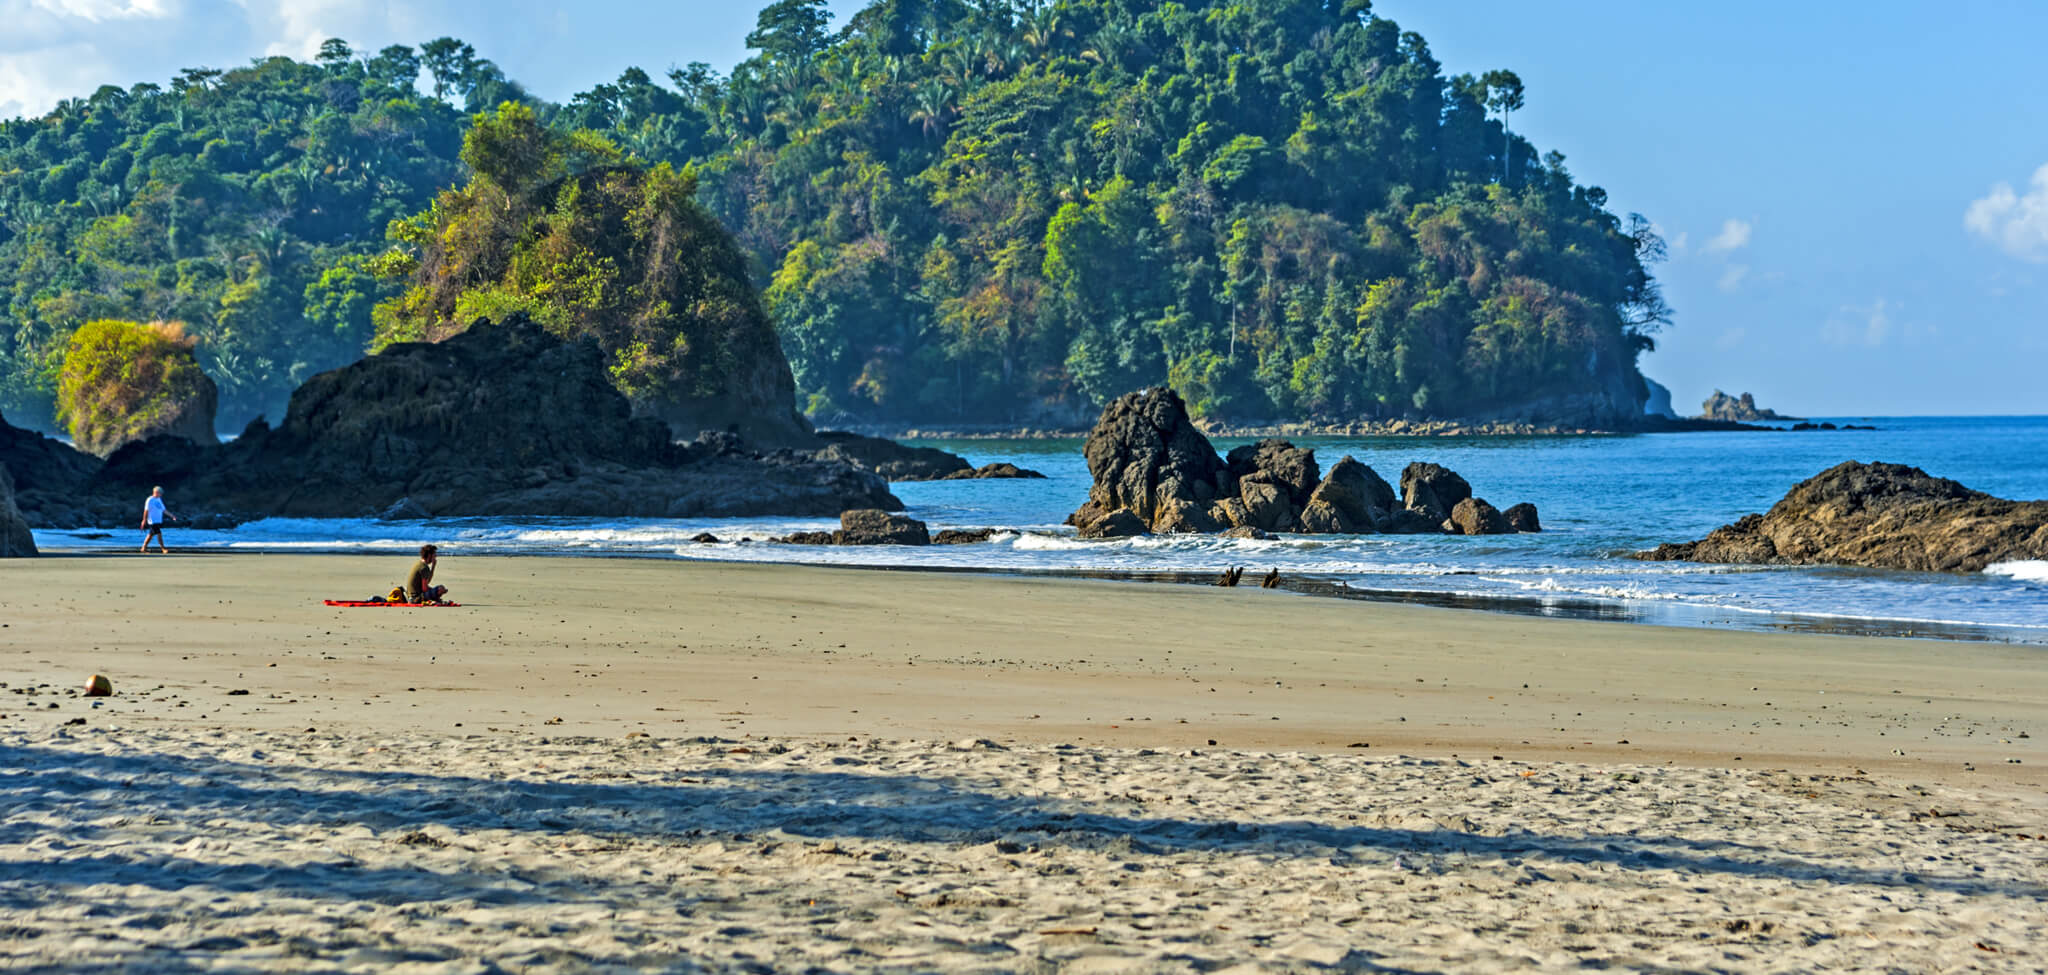 Beach Hotel Near Manuel Antonio National Park